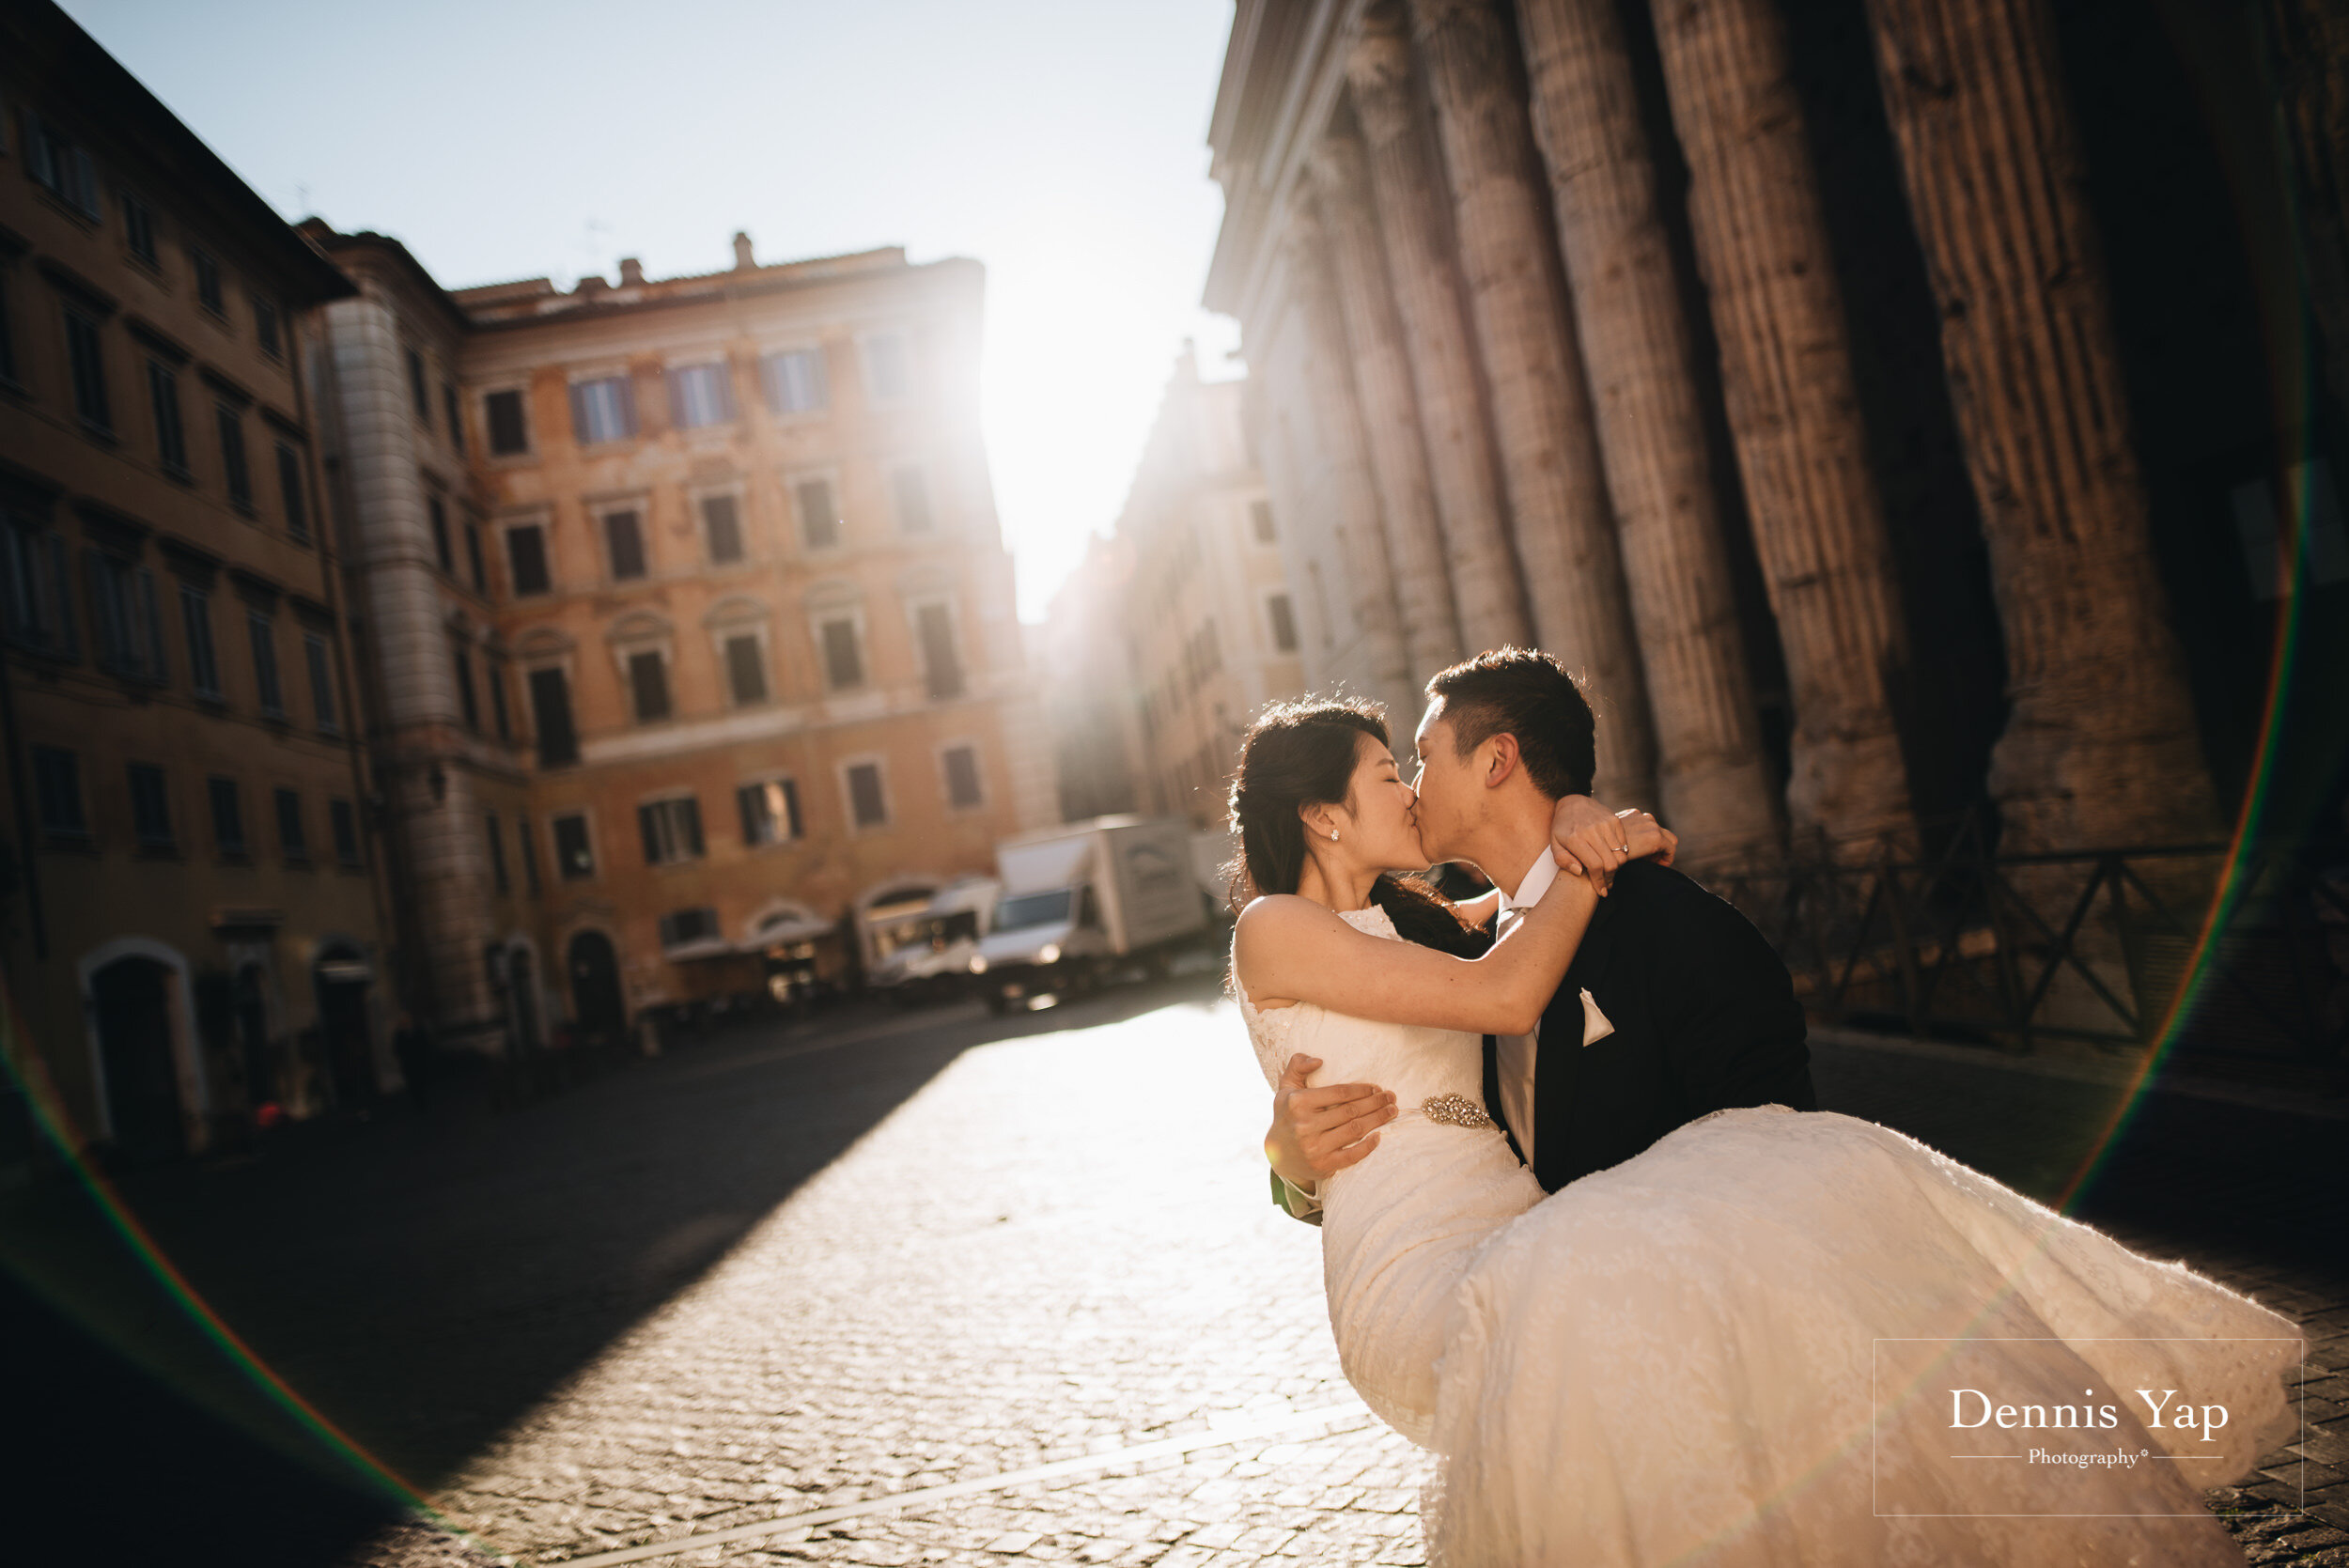 alex chloe pre wedding rome italy dennis yap photography overseas portrait classic beloved-117.jpg